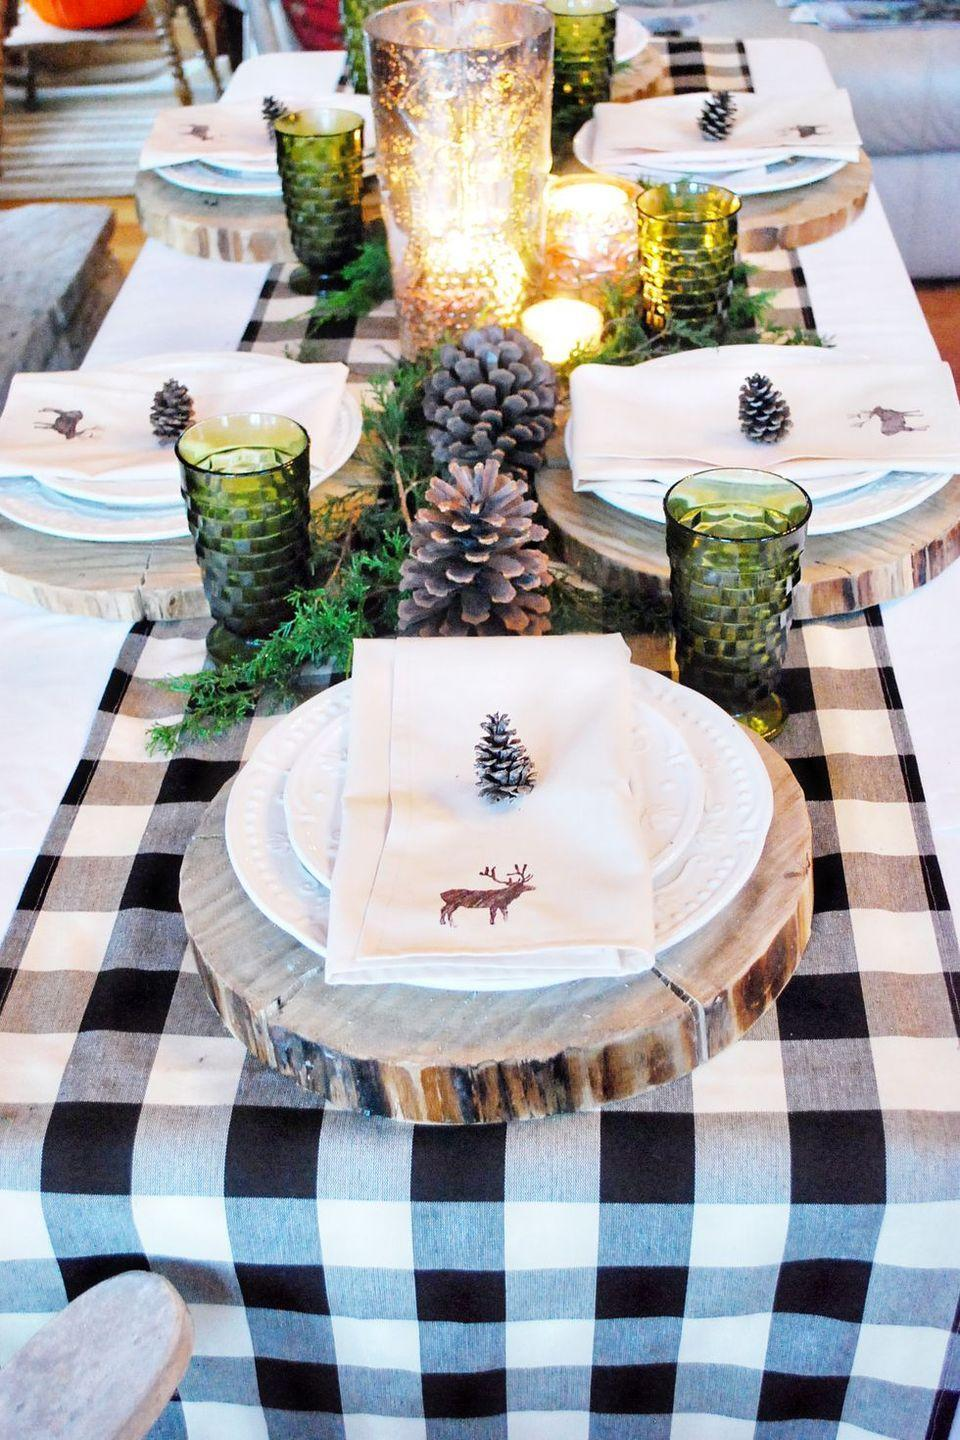 "<p>Fresh greenery, large pine cones, and green-tinted glass make for a stunning, woods-inspired scene. A gingham runner and hand-painted napkins keep things whimsical and fun.</p><p><strong>Get the tutorial at <a href=""http://thewhitebuffalostylingco.com/life-of-splendor-christmas-line/"" rel=""nofollow noopener"" target=""_blank"" data-ylk=""slk:The White Buffalo Styling Co"" class=""link rapid-noclick-resp"">The White Buffalo Styling Co</a>.</strong></p><p><strong><a class=""link rapid-noclick-resp"" href=""https://www.amazon.com/Wilson-Enterprises-Basswood-Excellent-Centerpiece/dp/B06Y5F1K7M?tag=syn-yahoo-20&ascsubtag=%5Bartid%7C10050.g.644%5Bsrc%7Cyahoo-us"" rel=""nofollow noopener"" target=""_blank"" data-ylk=""slk:SHOP WOOD SLICES"">SHOP WOOD SLICES</a><br></strong></p>"